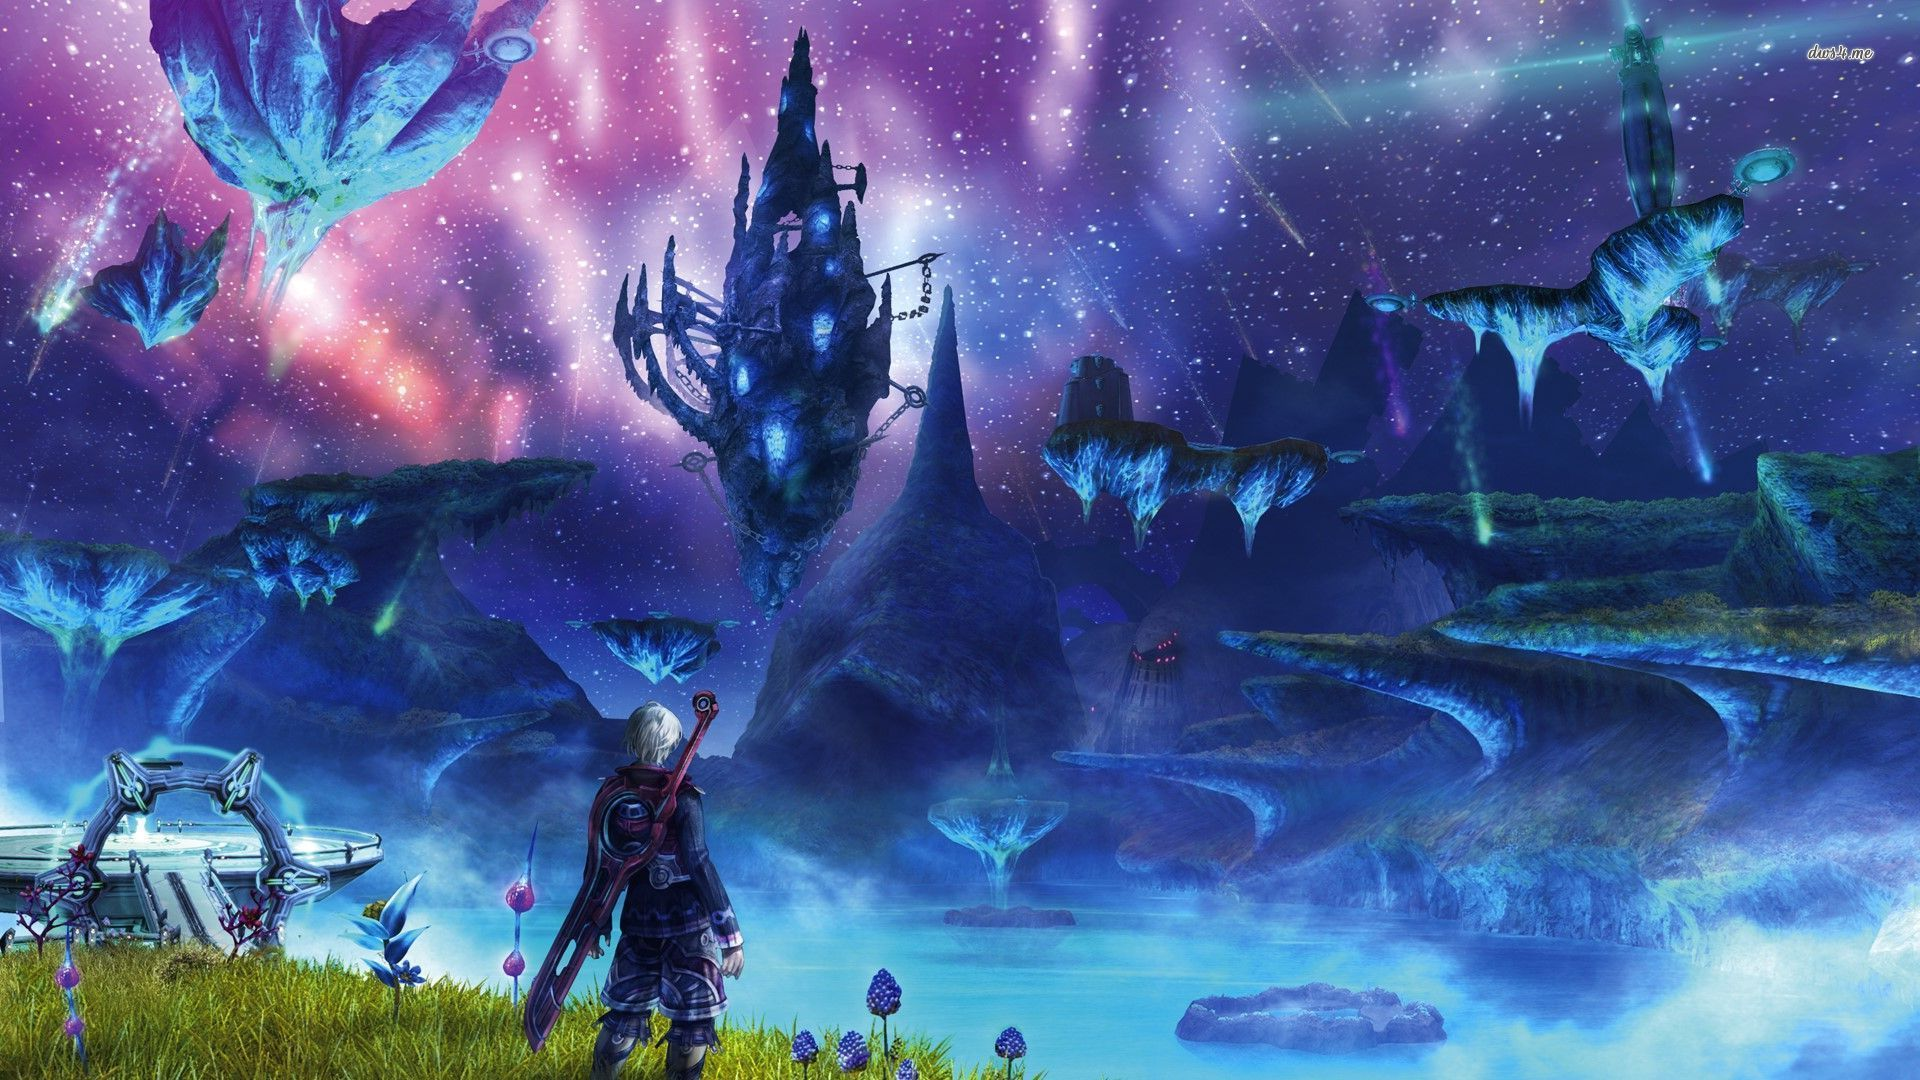 Xenoblade Chronicles Hd Wallpaper Xenoblade Chronicles Wallpaper